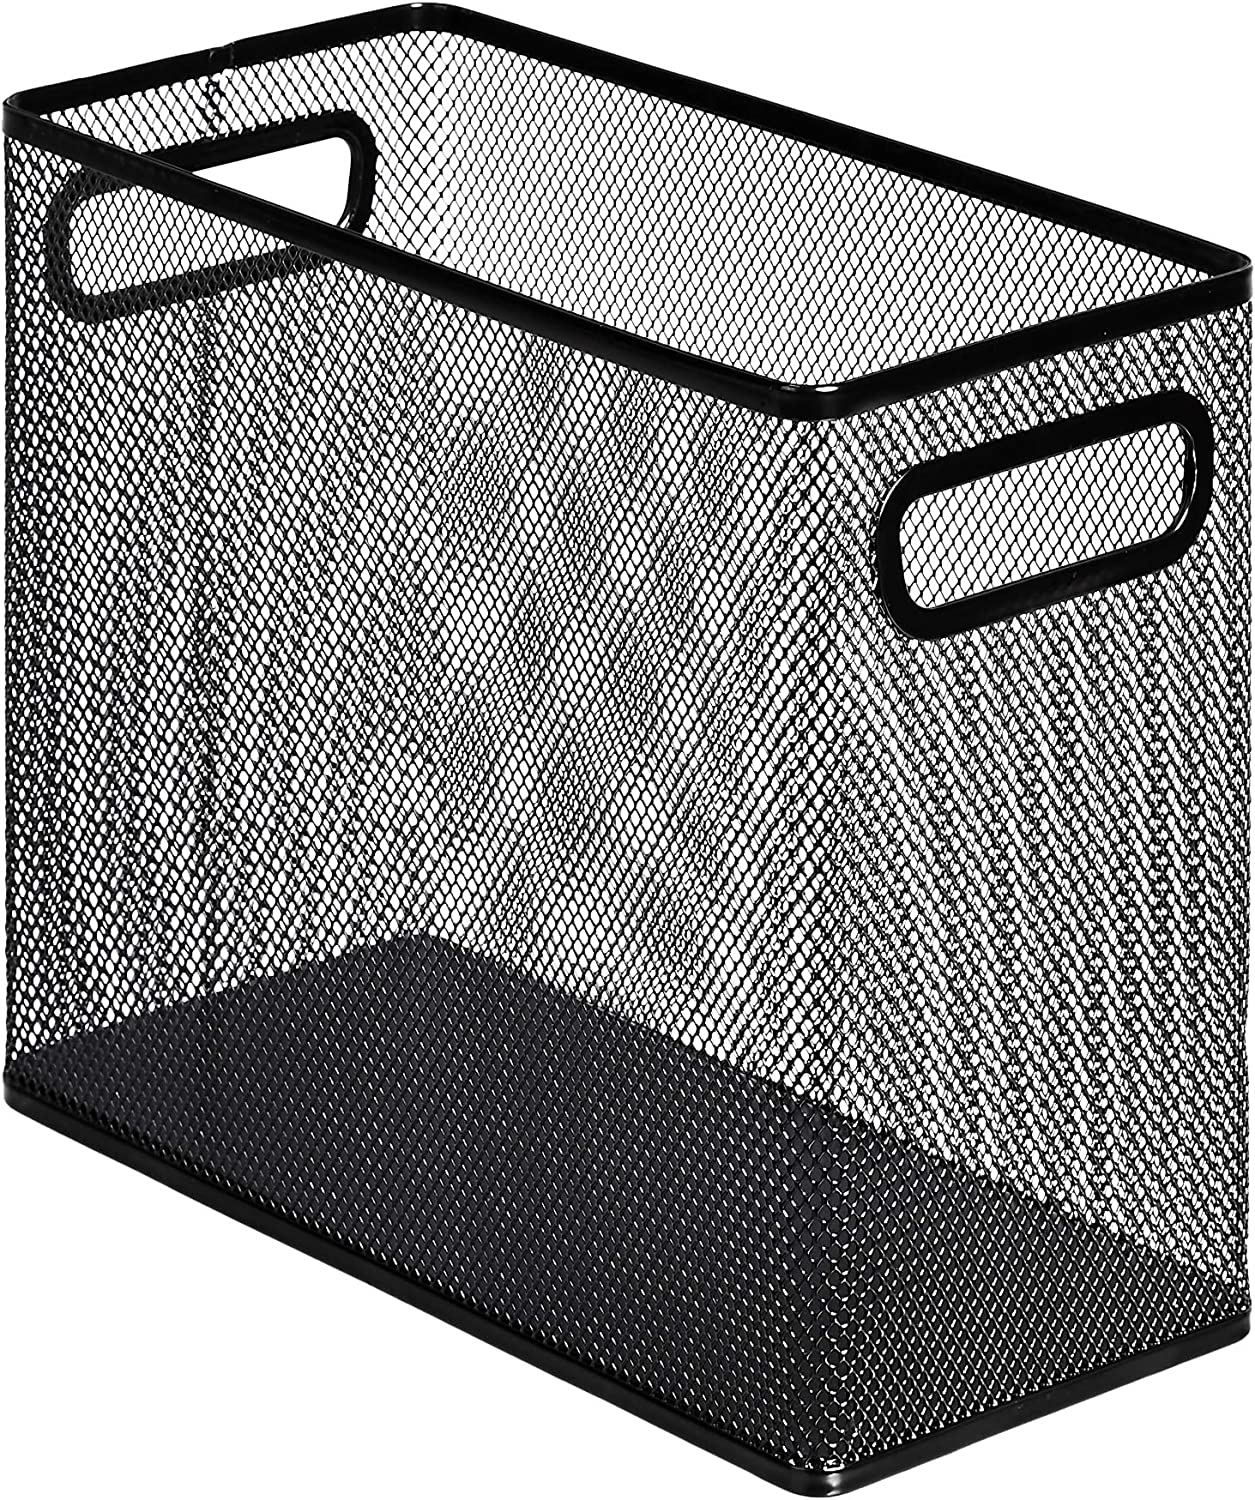 AmazonBasics Mesh Steel Desktop Hanging File Holder, Black